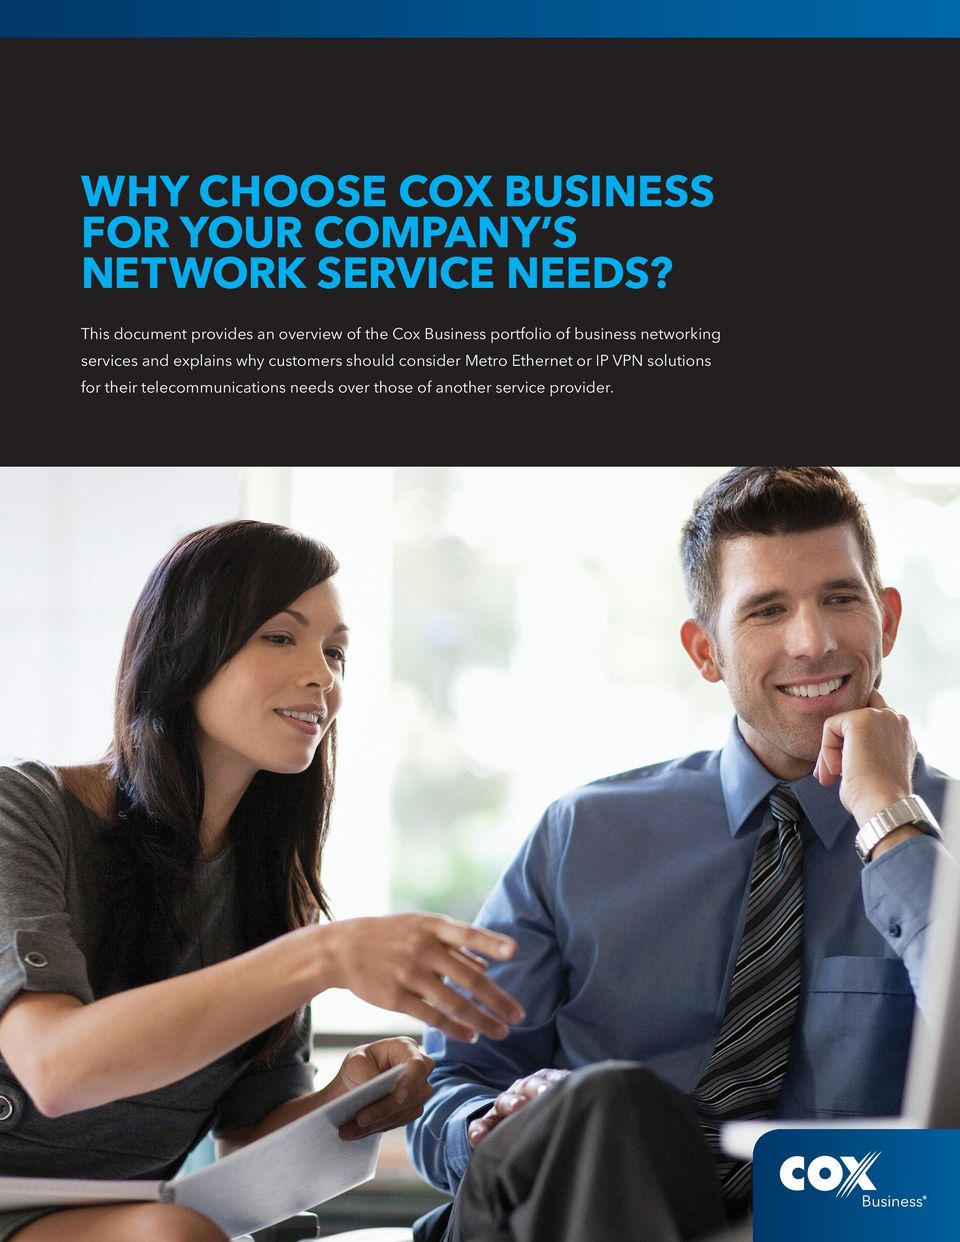 networking services and explains why customers should consider Metro Ethernet